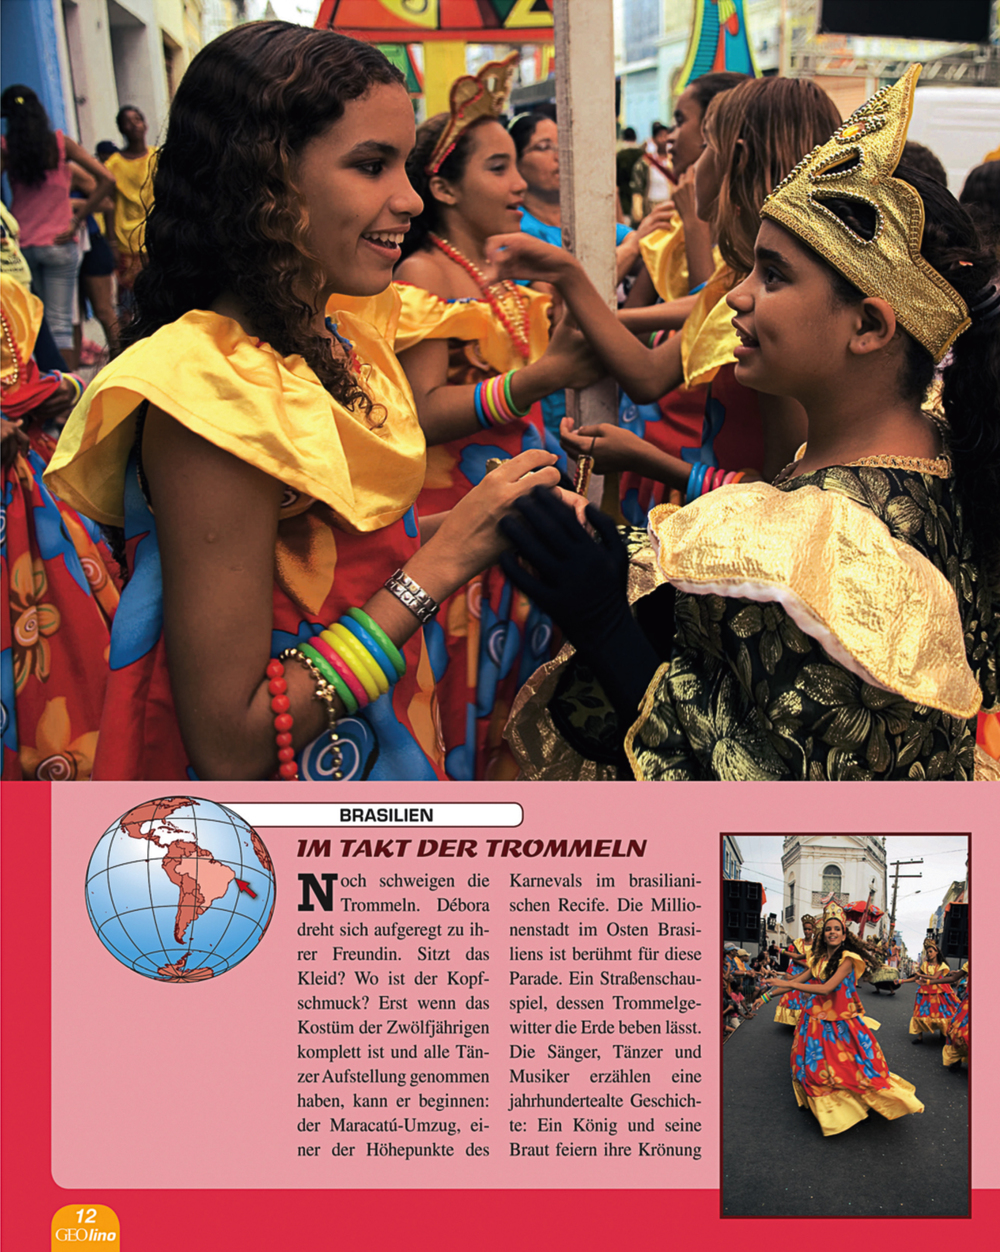 Imagines from Carnaval in Recife in German children's magazine  GEO Lino.